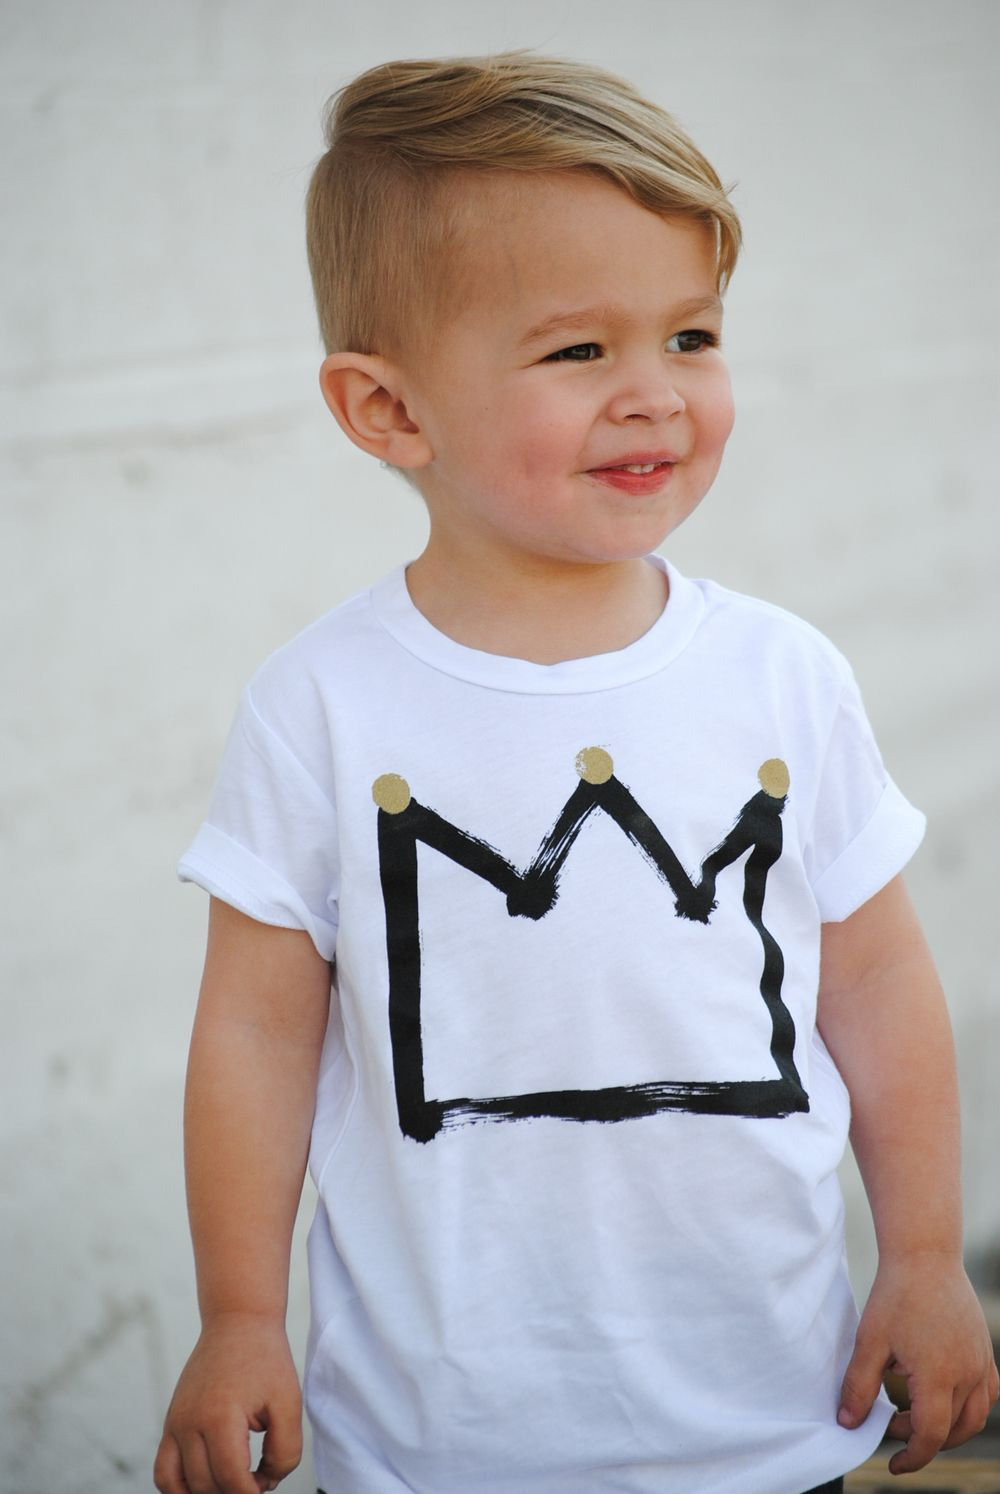 Boy hairstyle haircuts image of royalty  toddler hair styles  pinterest  royalty